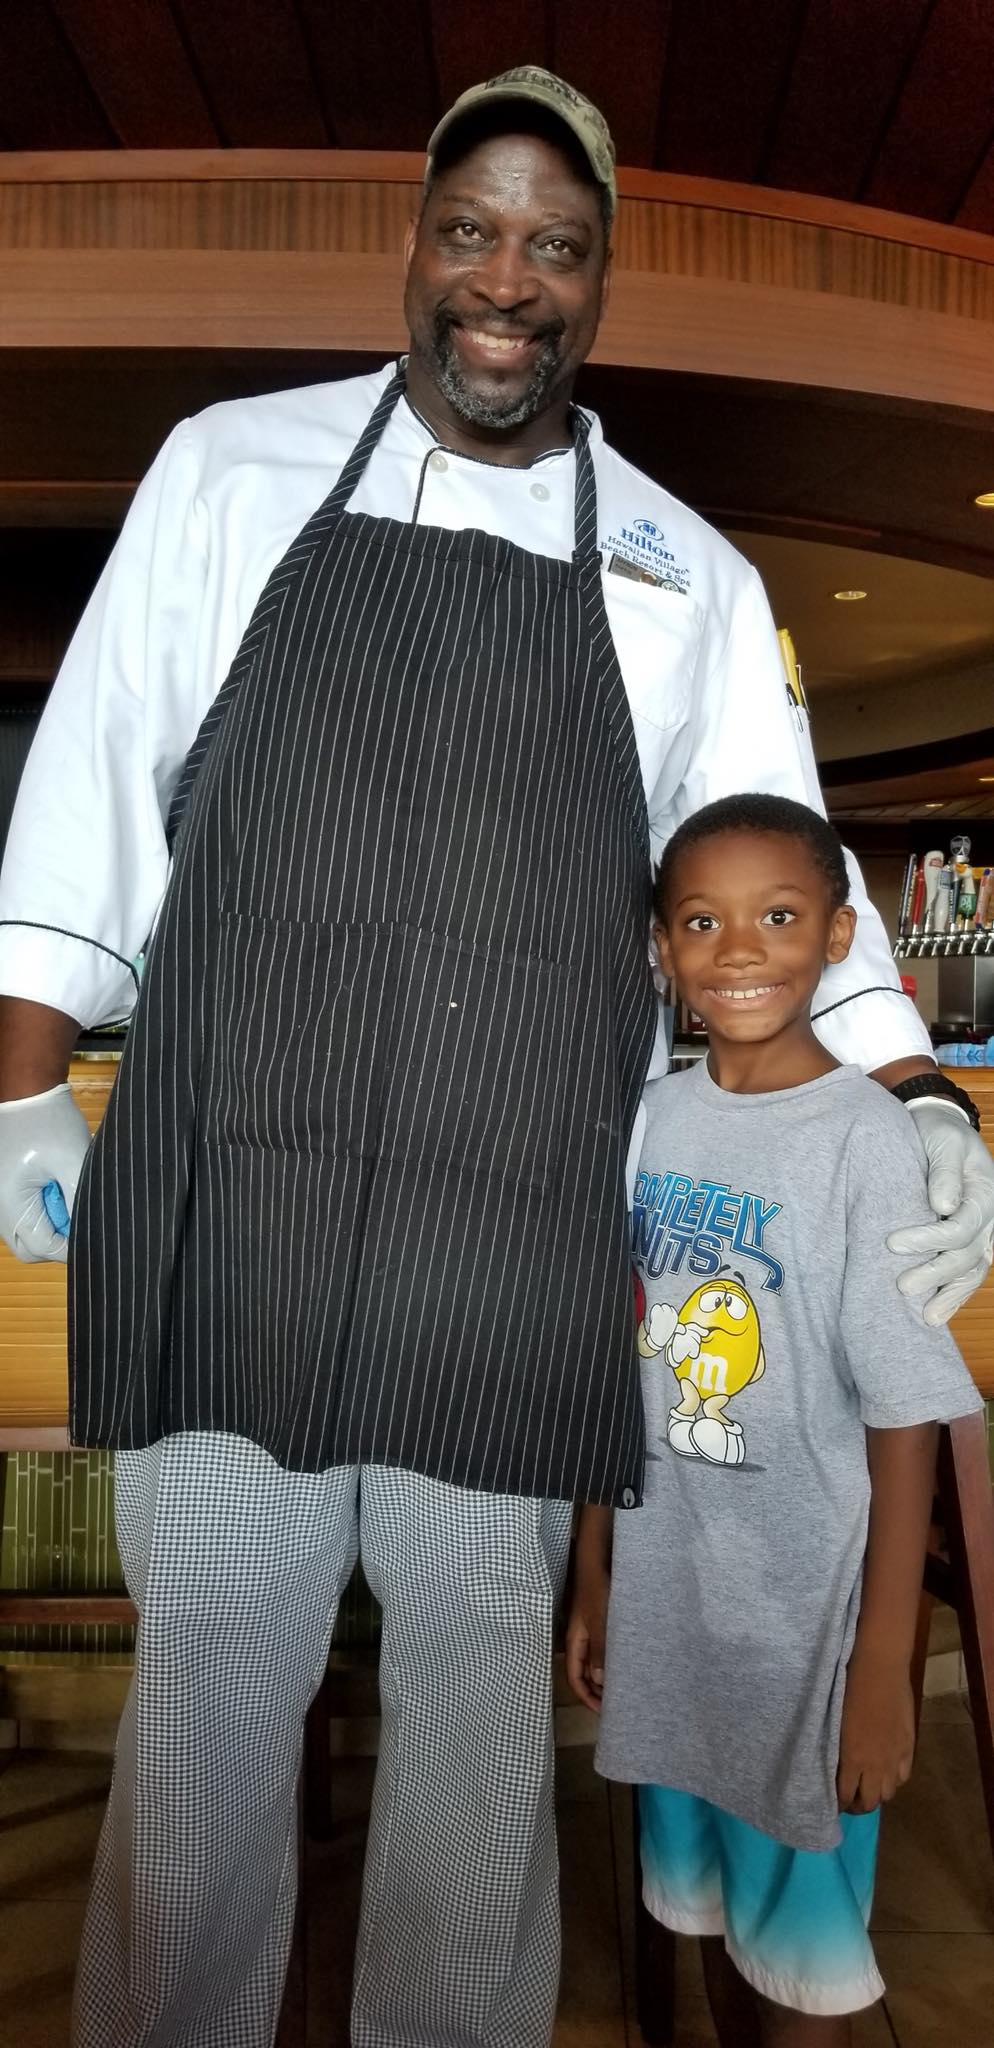 Affron and his son at The Hilton.